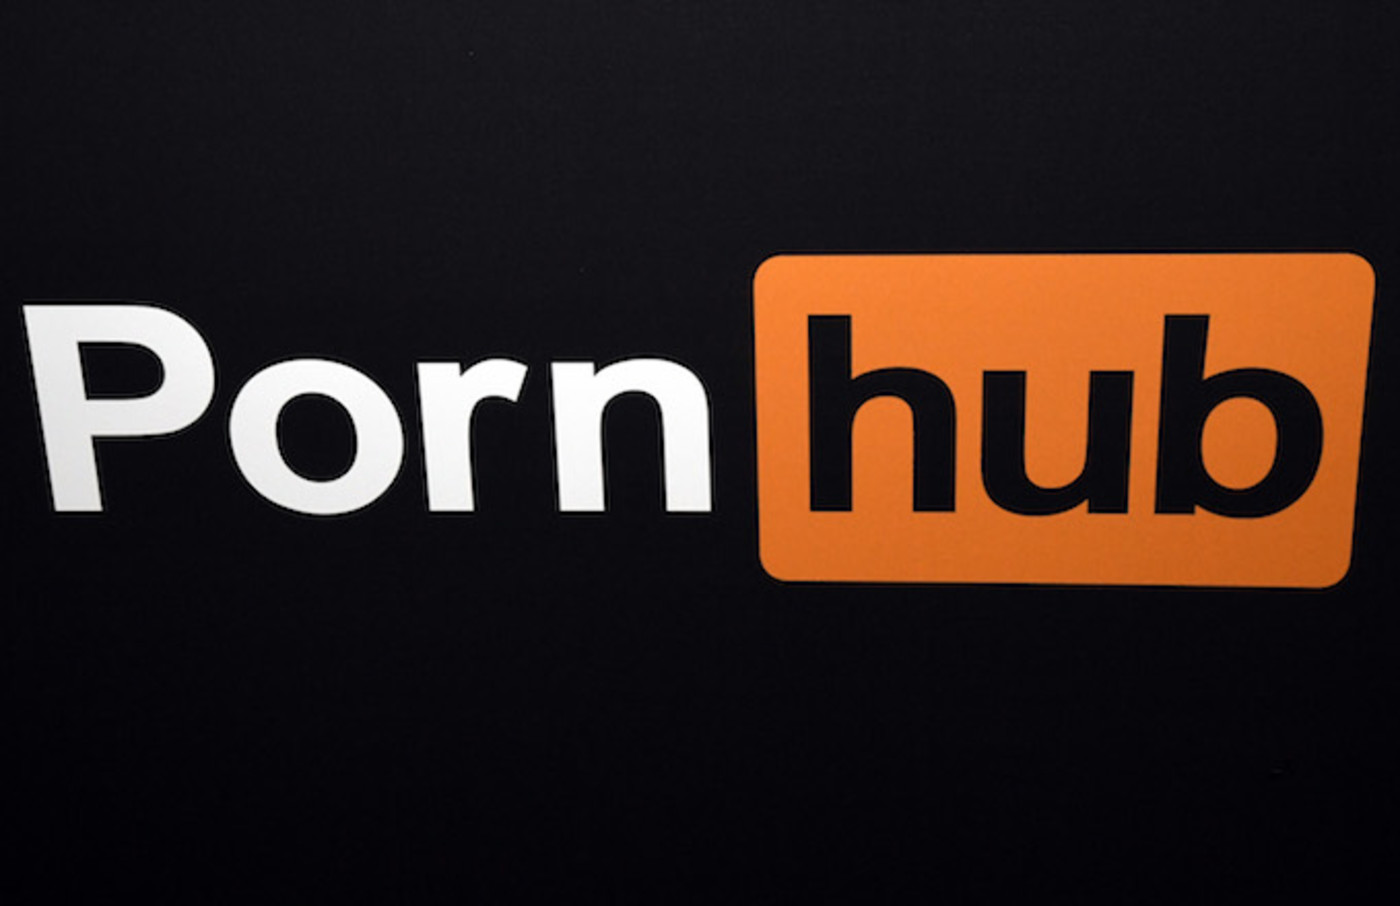 Pornhub logo is displayed at the company's booth at the 2018 AVN Adult Entertainment Expo.